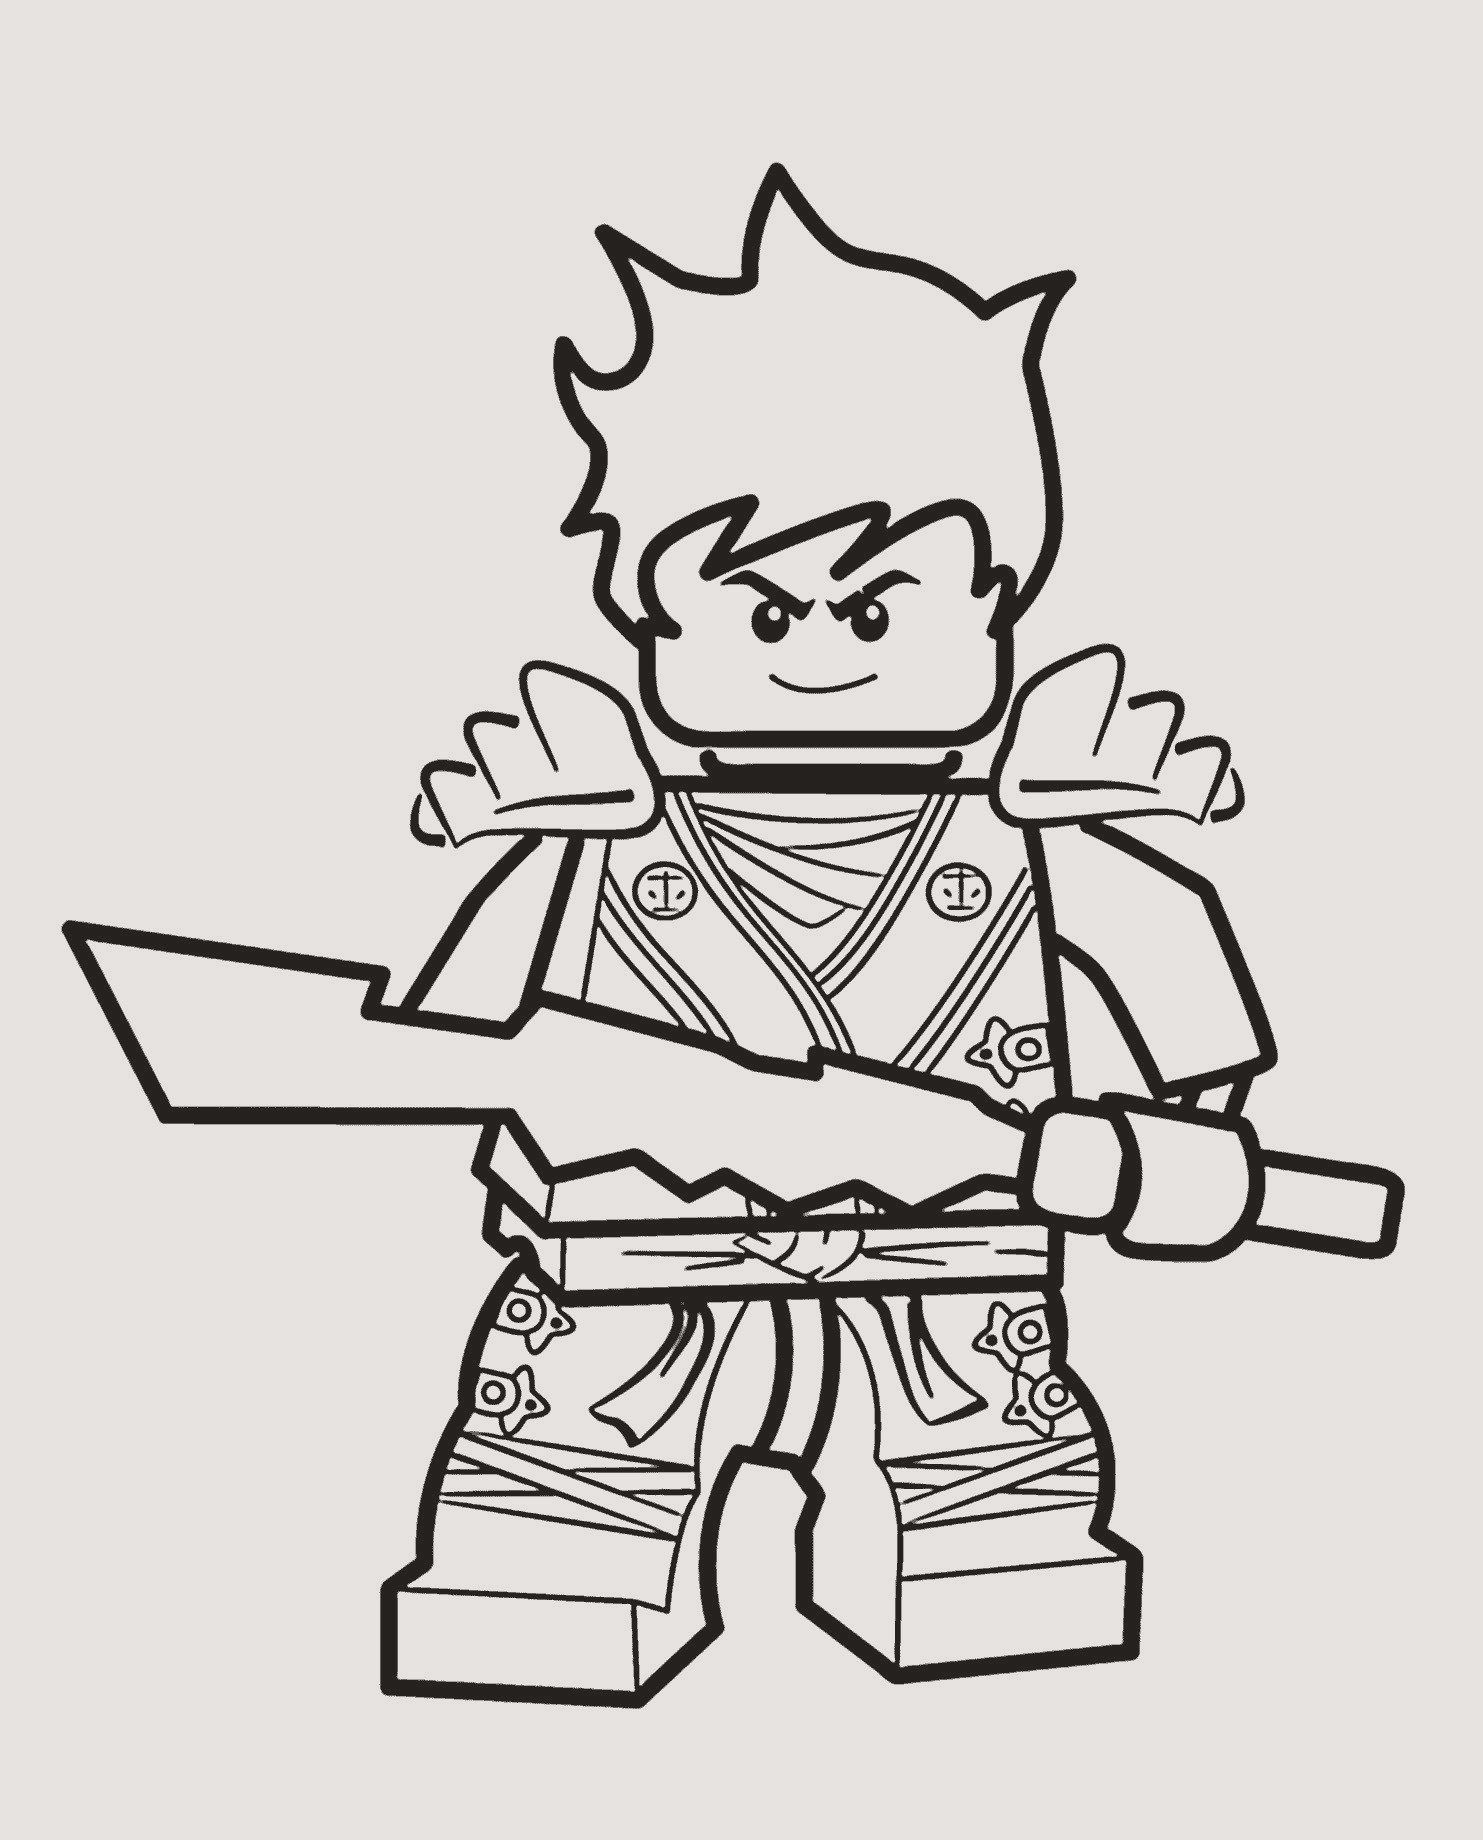 Lego Ninjago Coloring Pages Awesome 30 Kostenlose Ausmalbilder Ninjago Morro Neuste Ninjago Coloring Pages Lego Coloring Coloring Pages For Kids